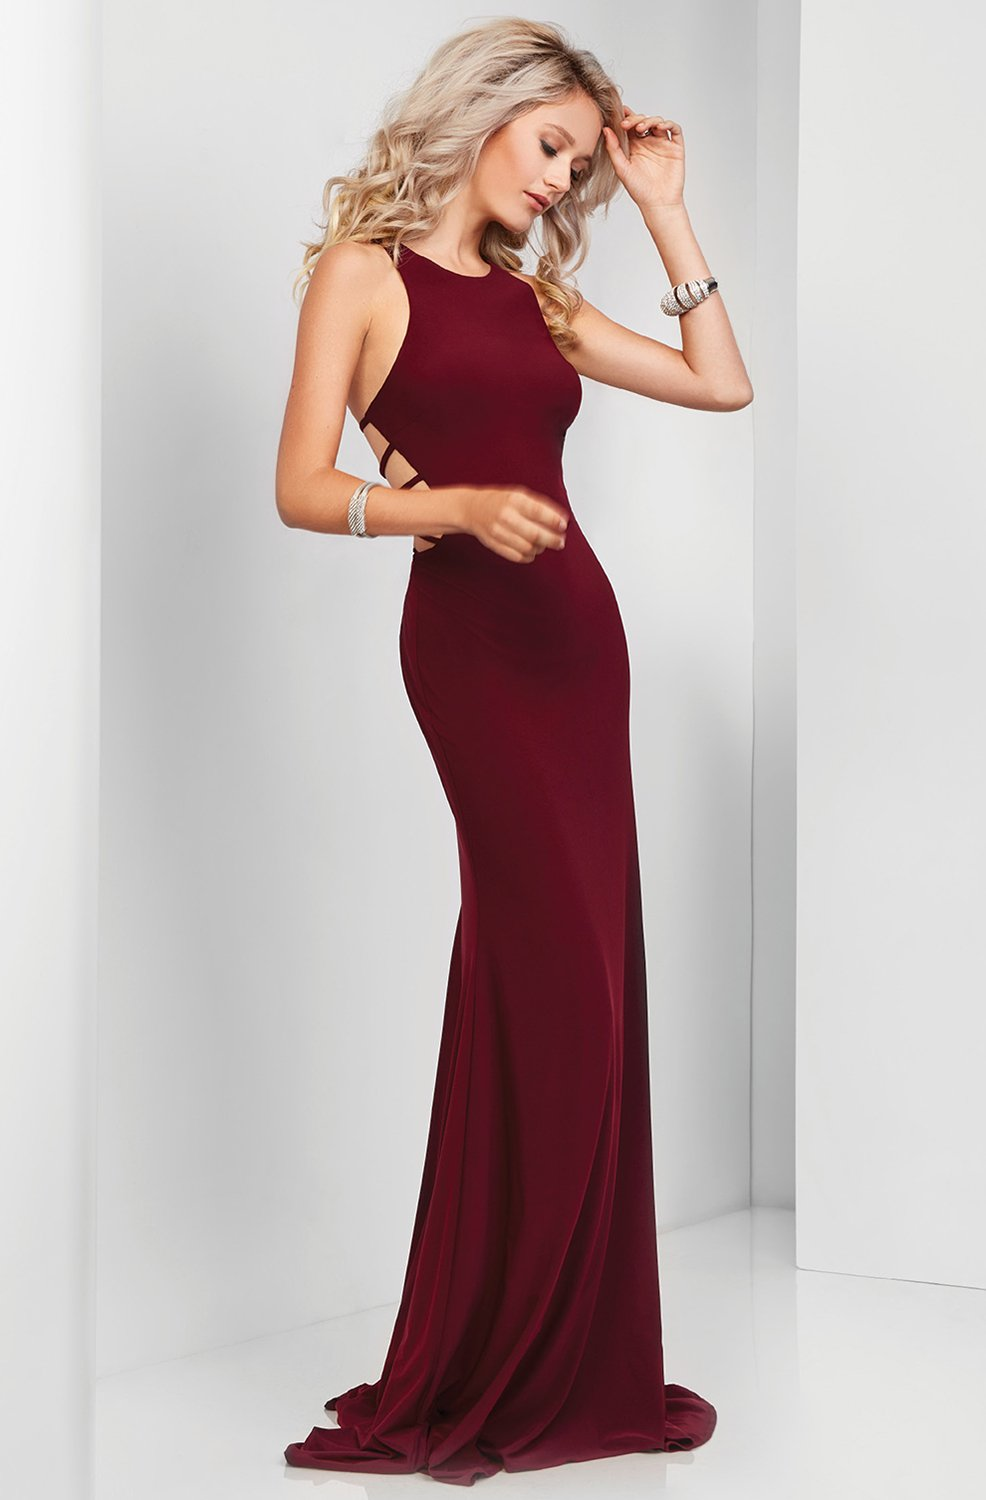 Clarisse - 3459 Strappy Jewel Sheath Dress in Red